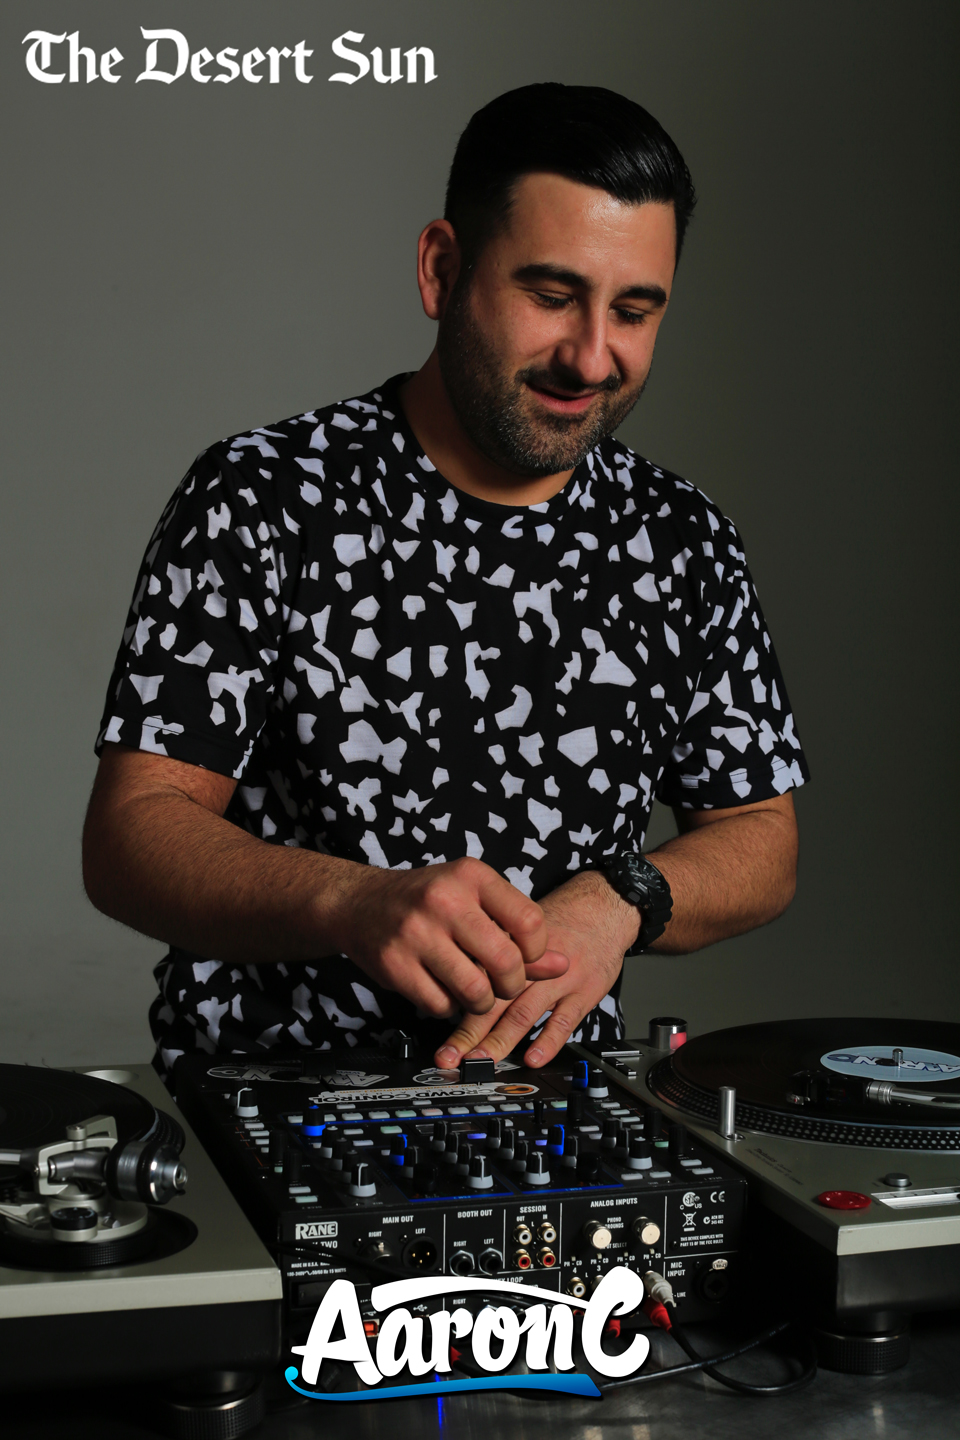 Ask a DJ: Where to dance, what to drink and how to enjoy the Coachella Valley this summer with Aaron C